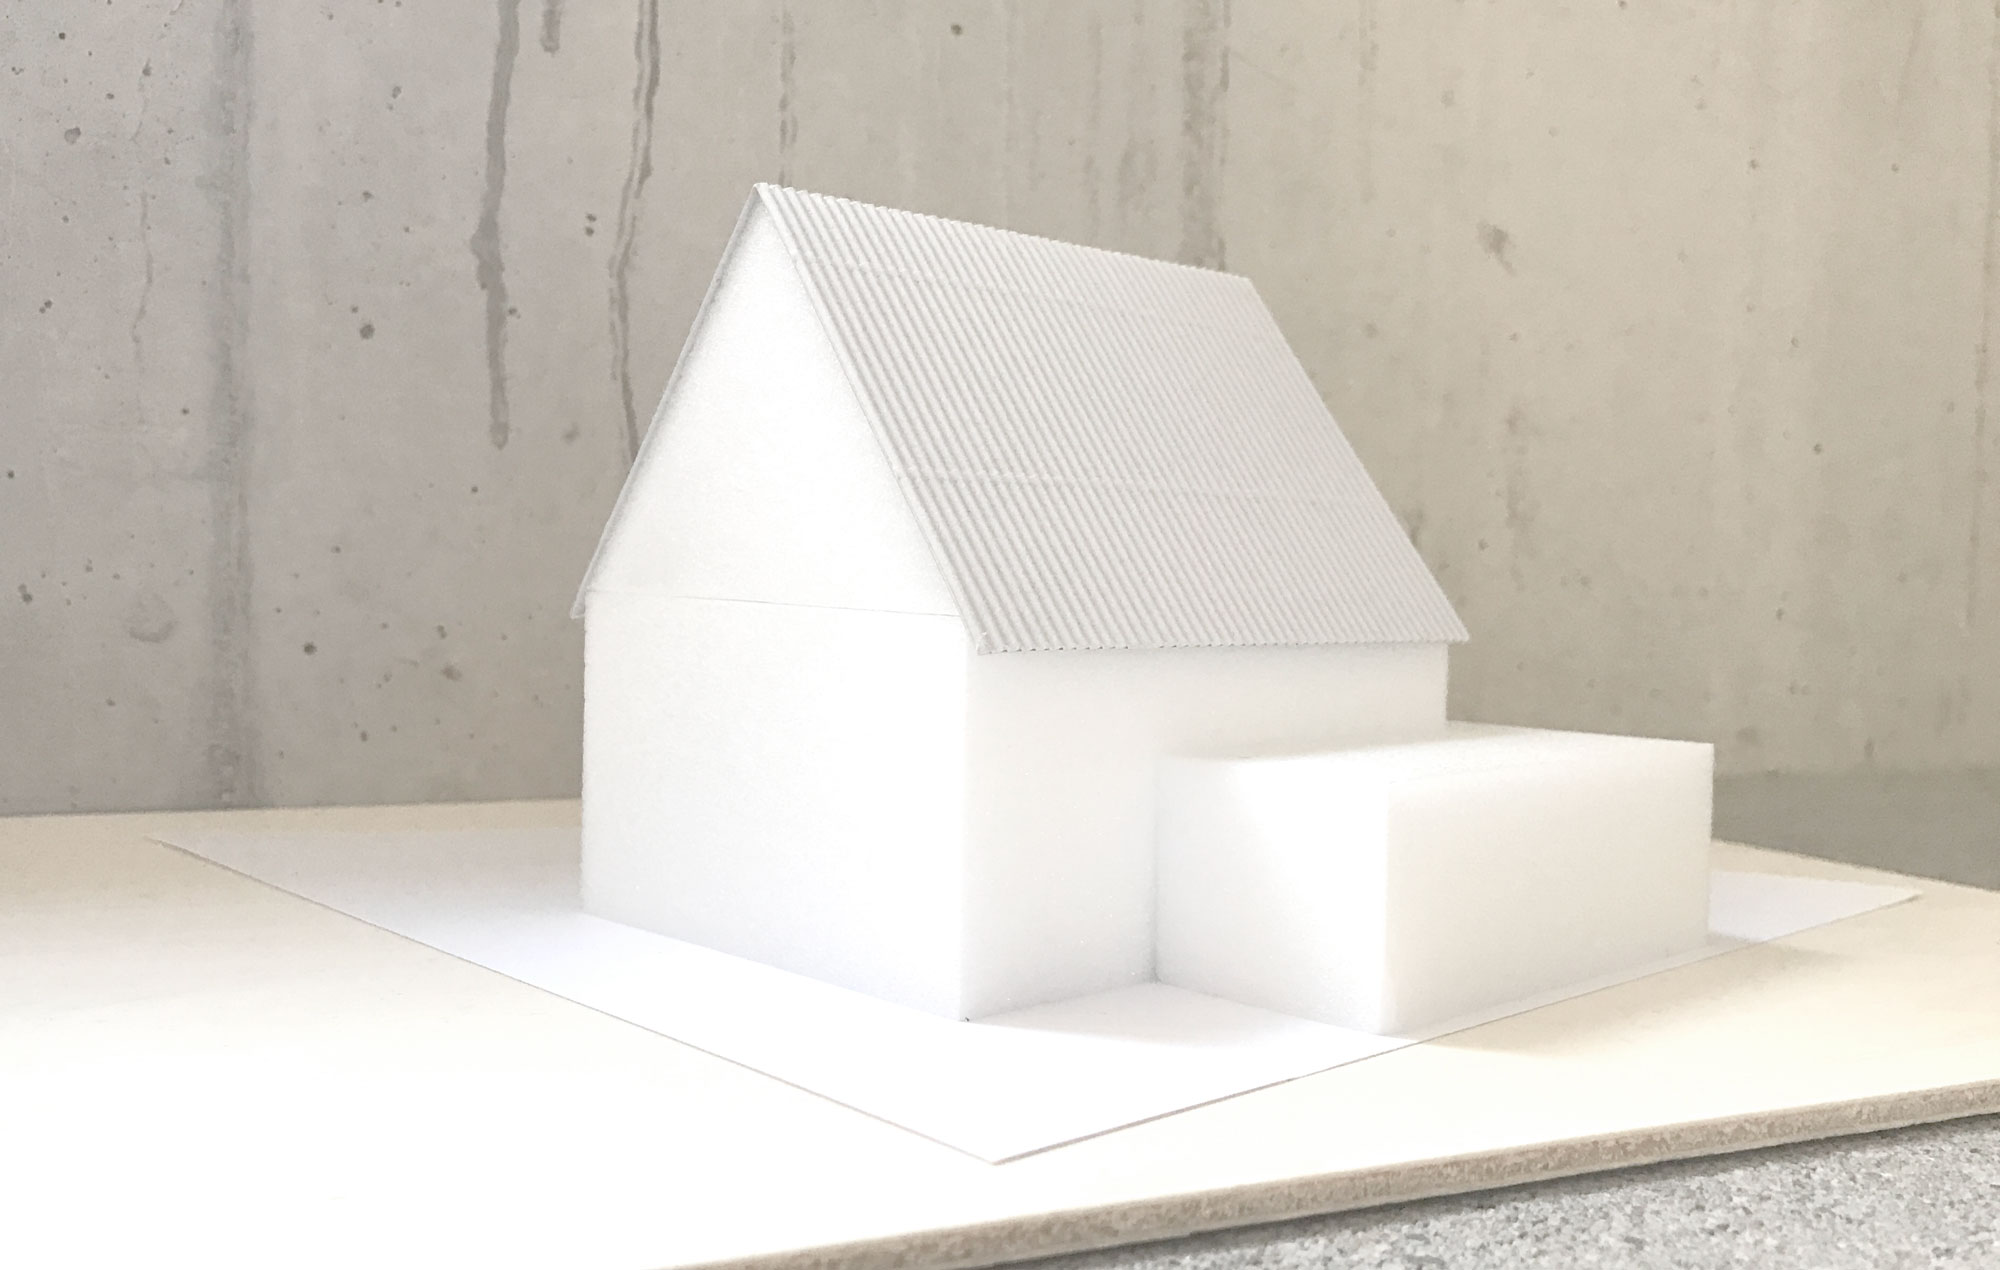 maquette_architect_woonhuis_ambacht